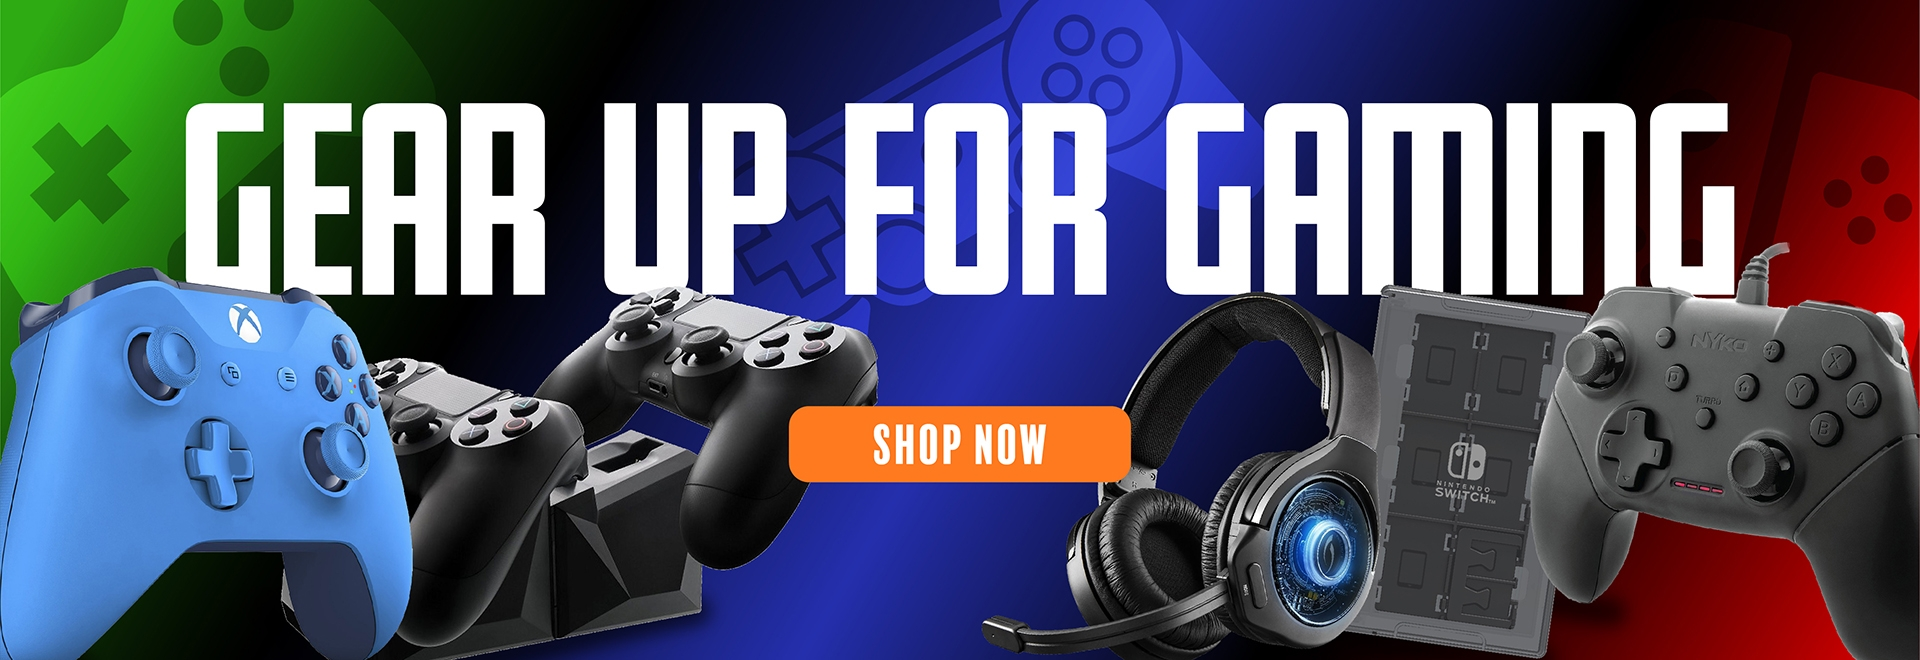 Gear Up for Gaming